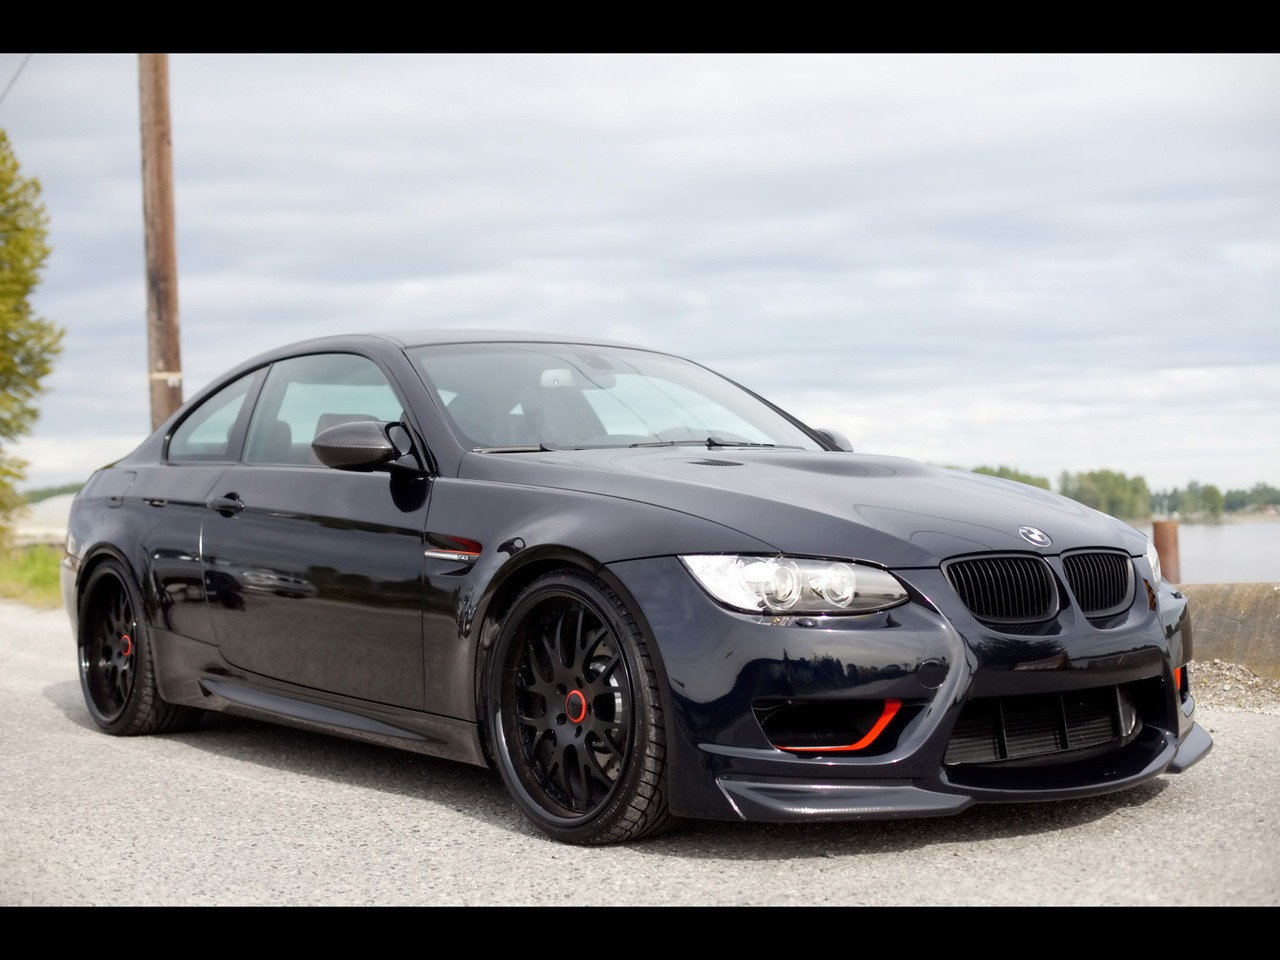 Bmw Norwell 545i columbus Wallpaper High Resolution